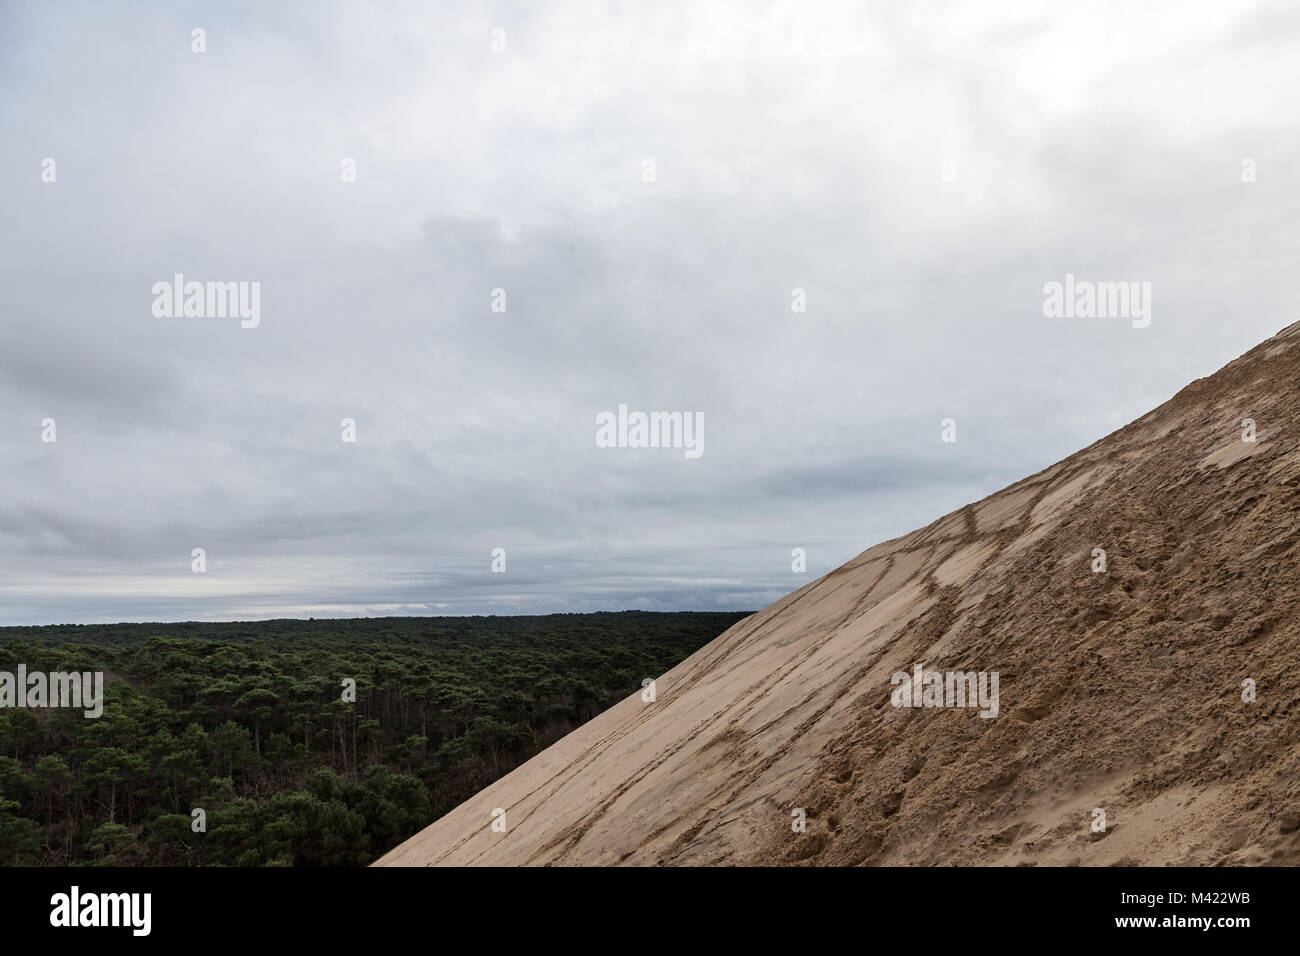 Panorama of the Pilat Dune (Dune du Pilat) during a cloudy afternoon with the Landes Forest (Foret des Landes), - Stock Image